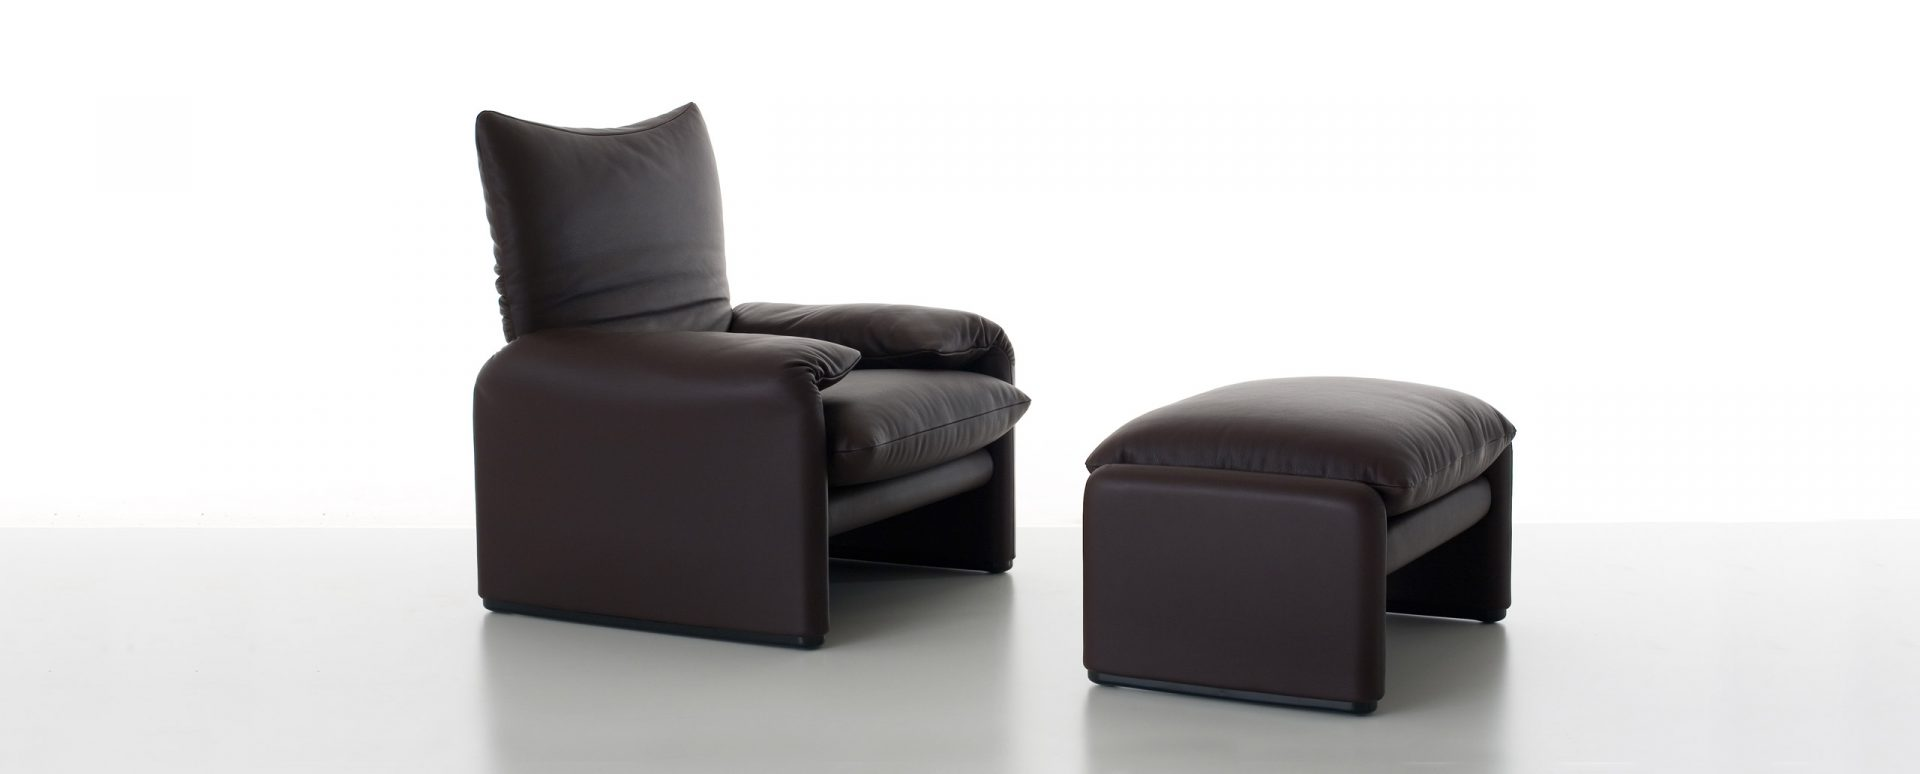 Cassina Maralunga sofa family included also armchair and pouf